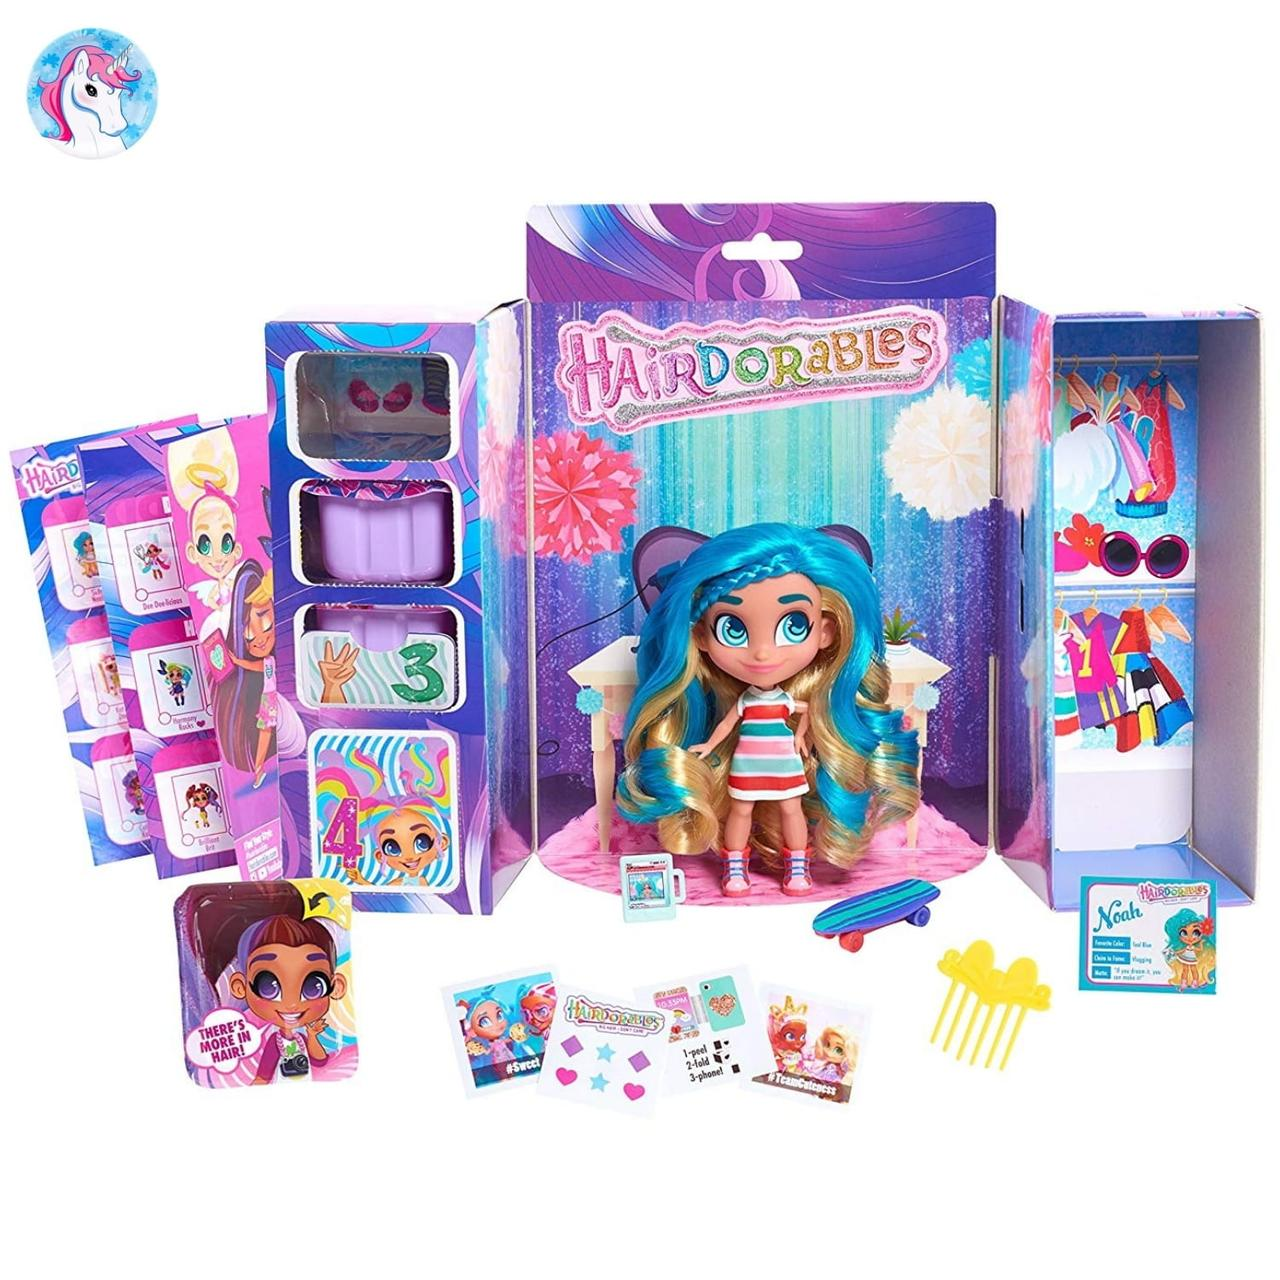 Кукла Хэрдораблс Hairdorables Dolls